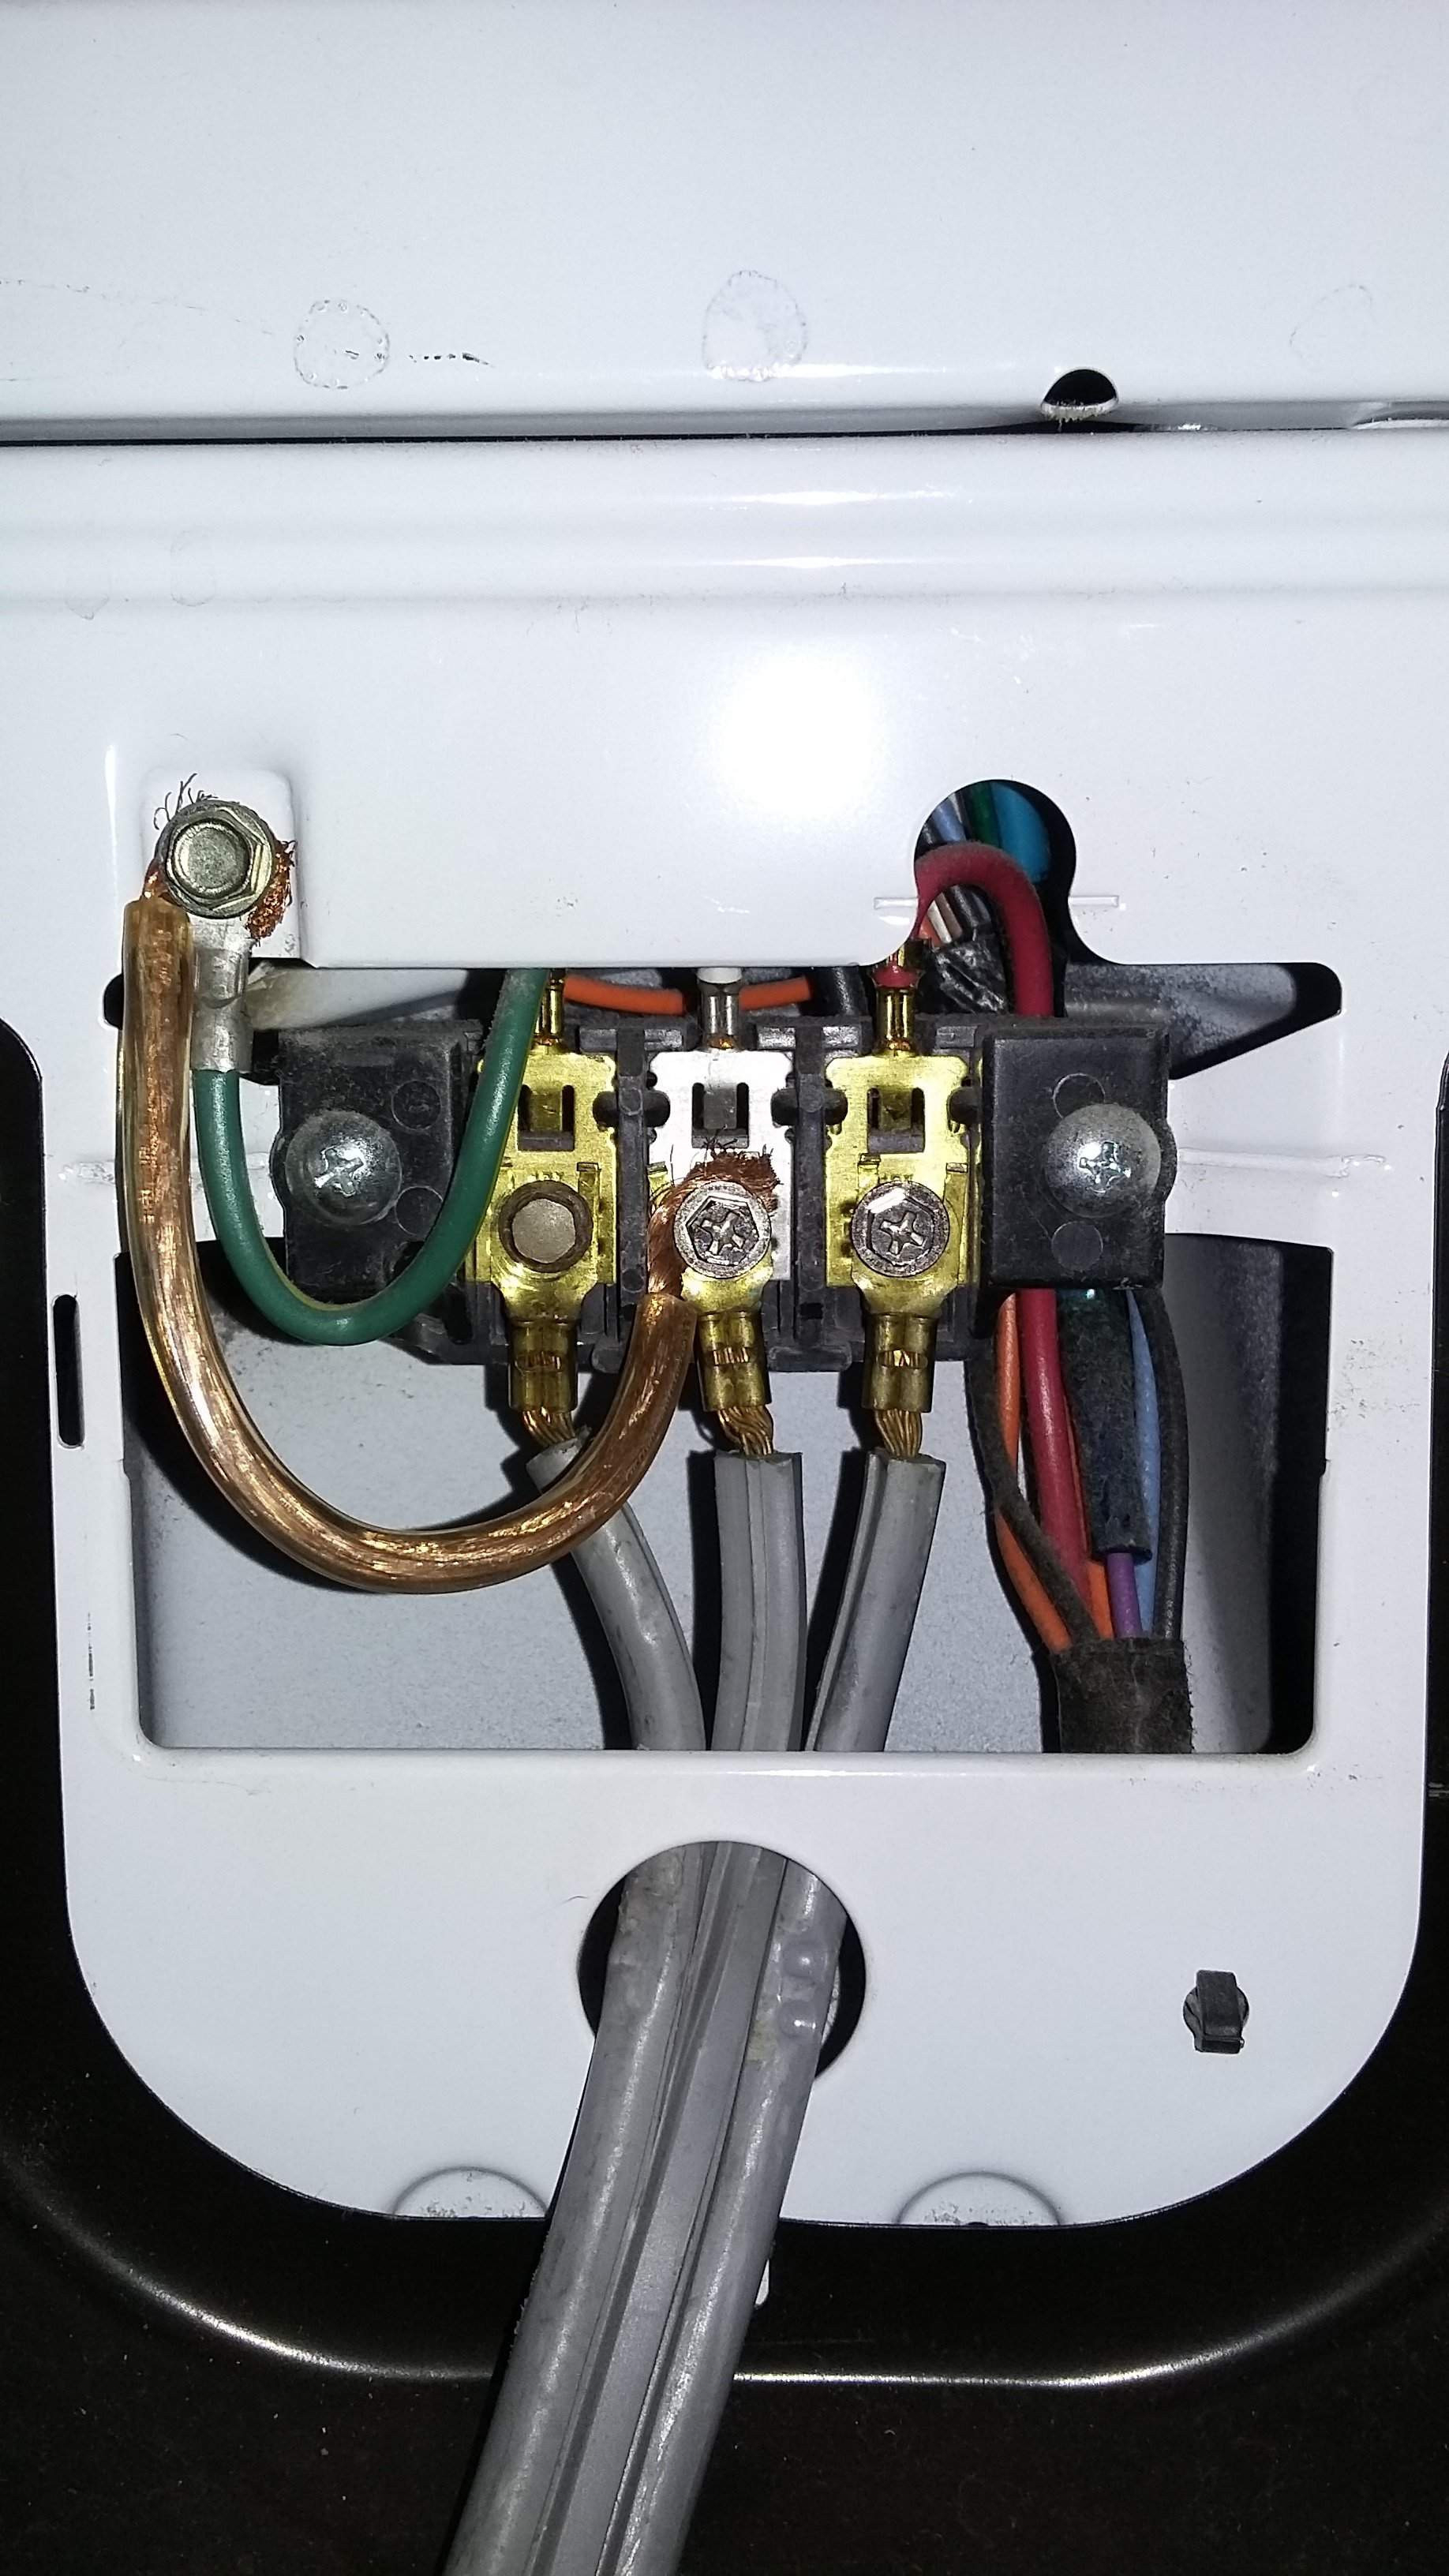 Dryer Plug Wiring Diagram 3 Prong | Releaseganji - Dryer Plug Wiring Diagram